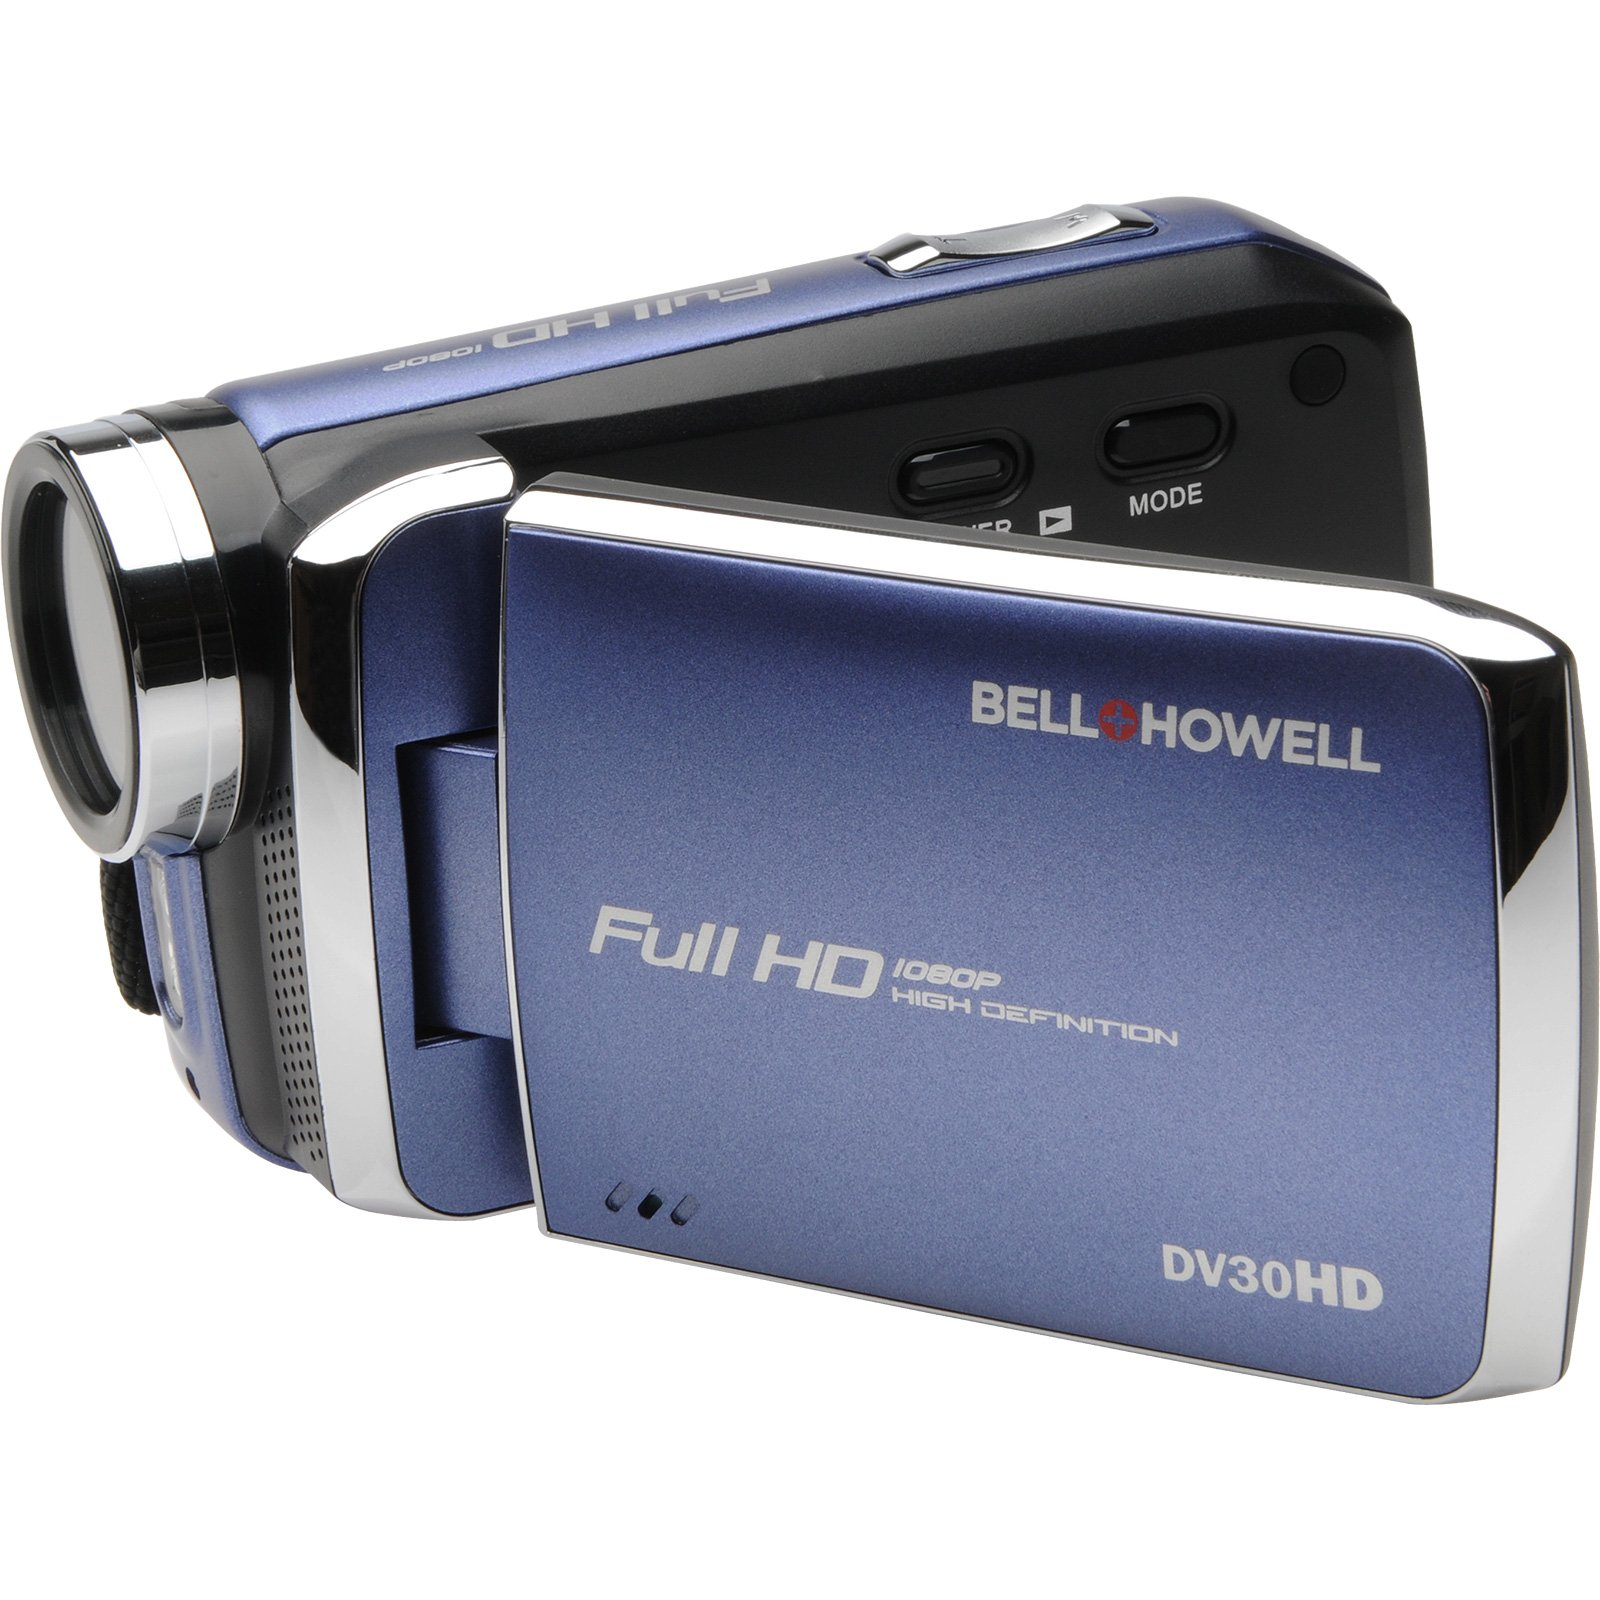 "Bell+howell Digital Camcorder - 3"" - Touchscreen Lcd - Full Hd - Blue - 16:9 - 20 Megapixel Image - 8x Digital Zoom - Electronic, Optical [is] - Video Light - Hdmi - Microsd Card, Microsd (dv30hd-bl)"